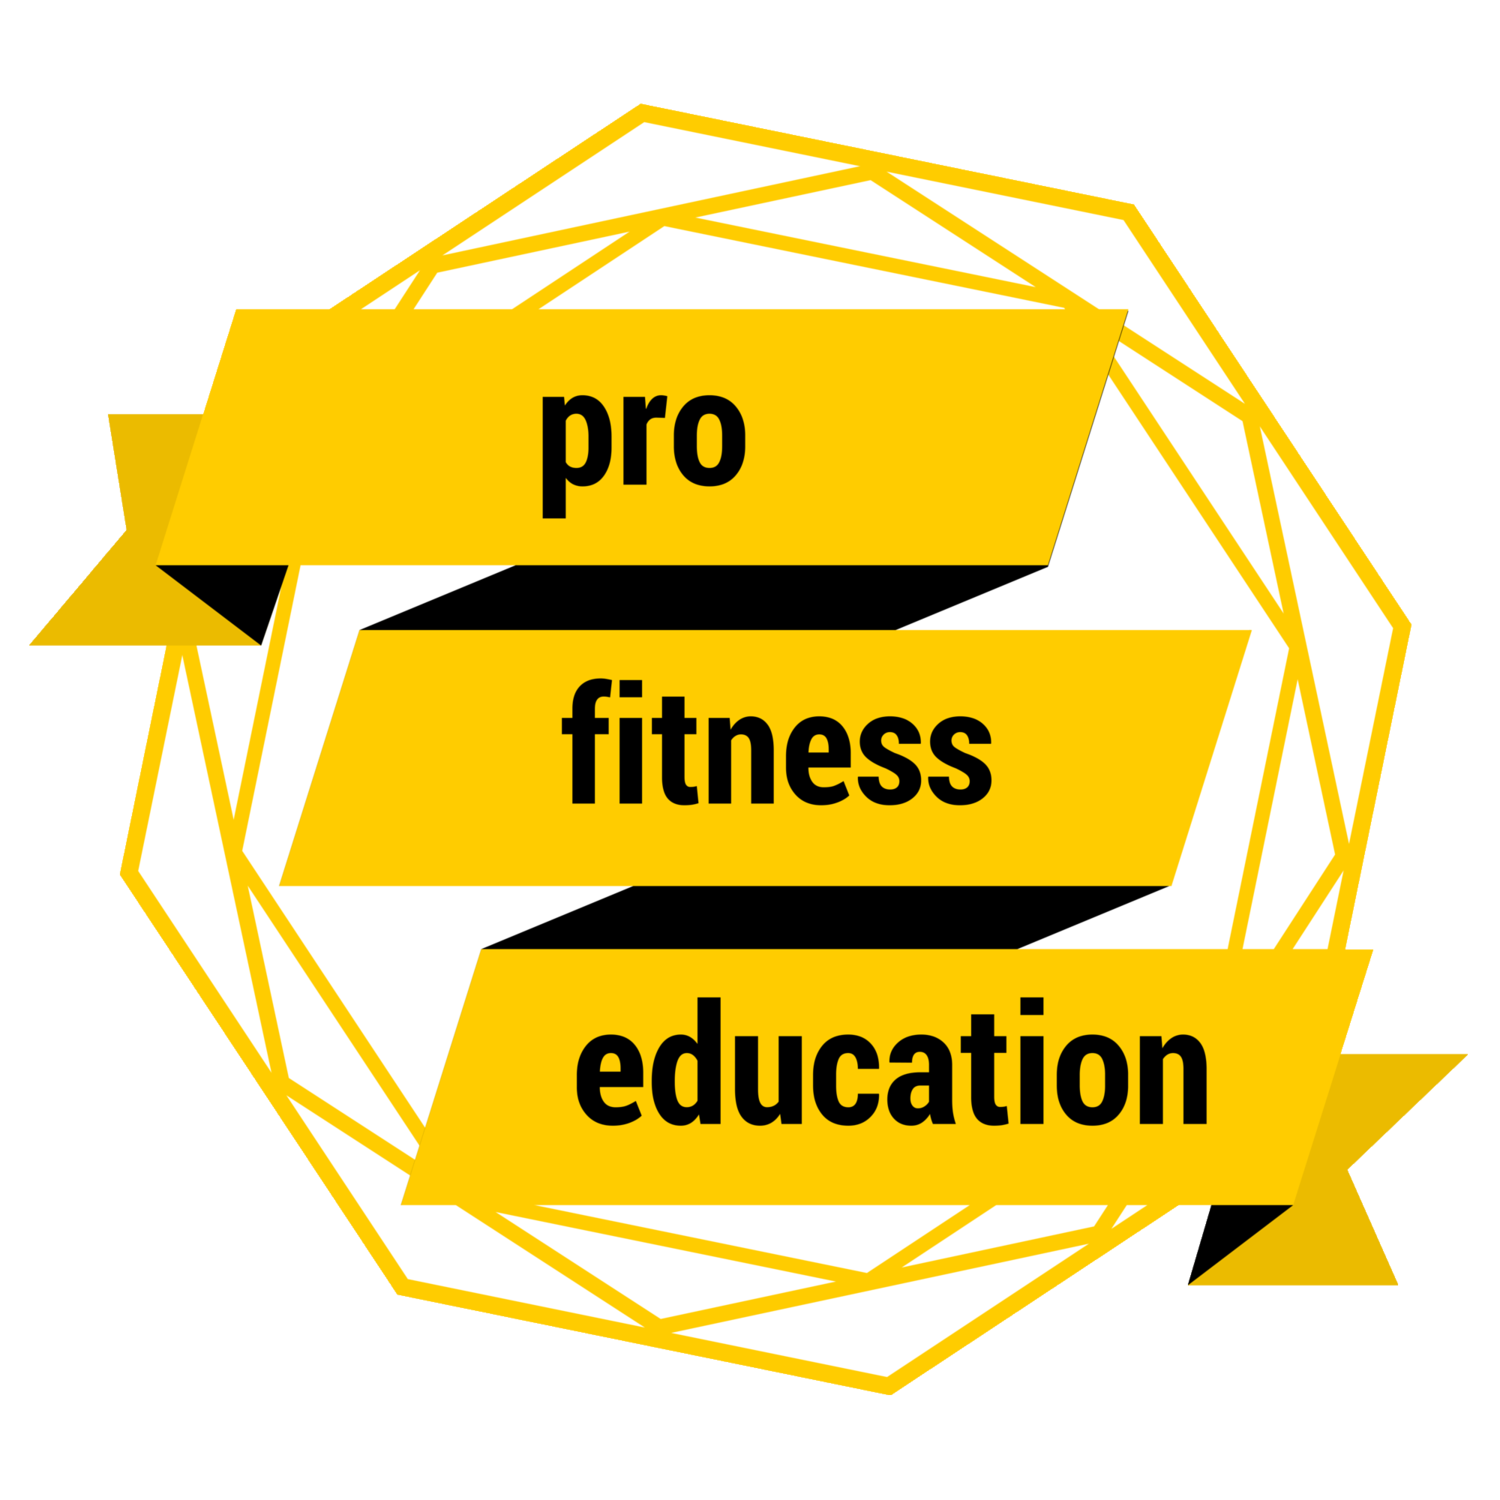 Pro Fitness Education